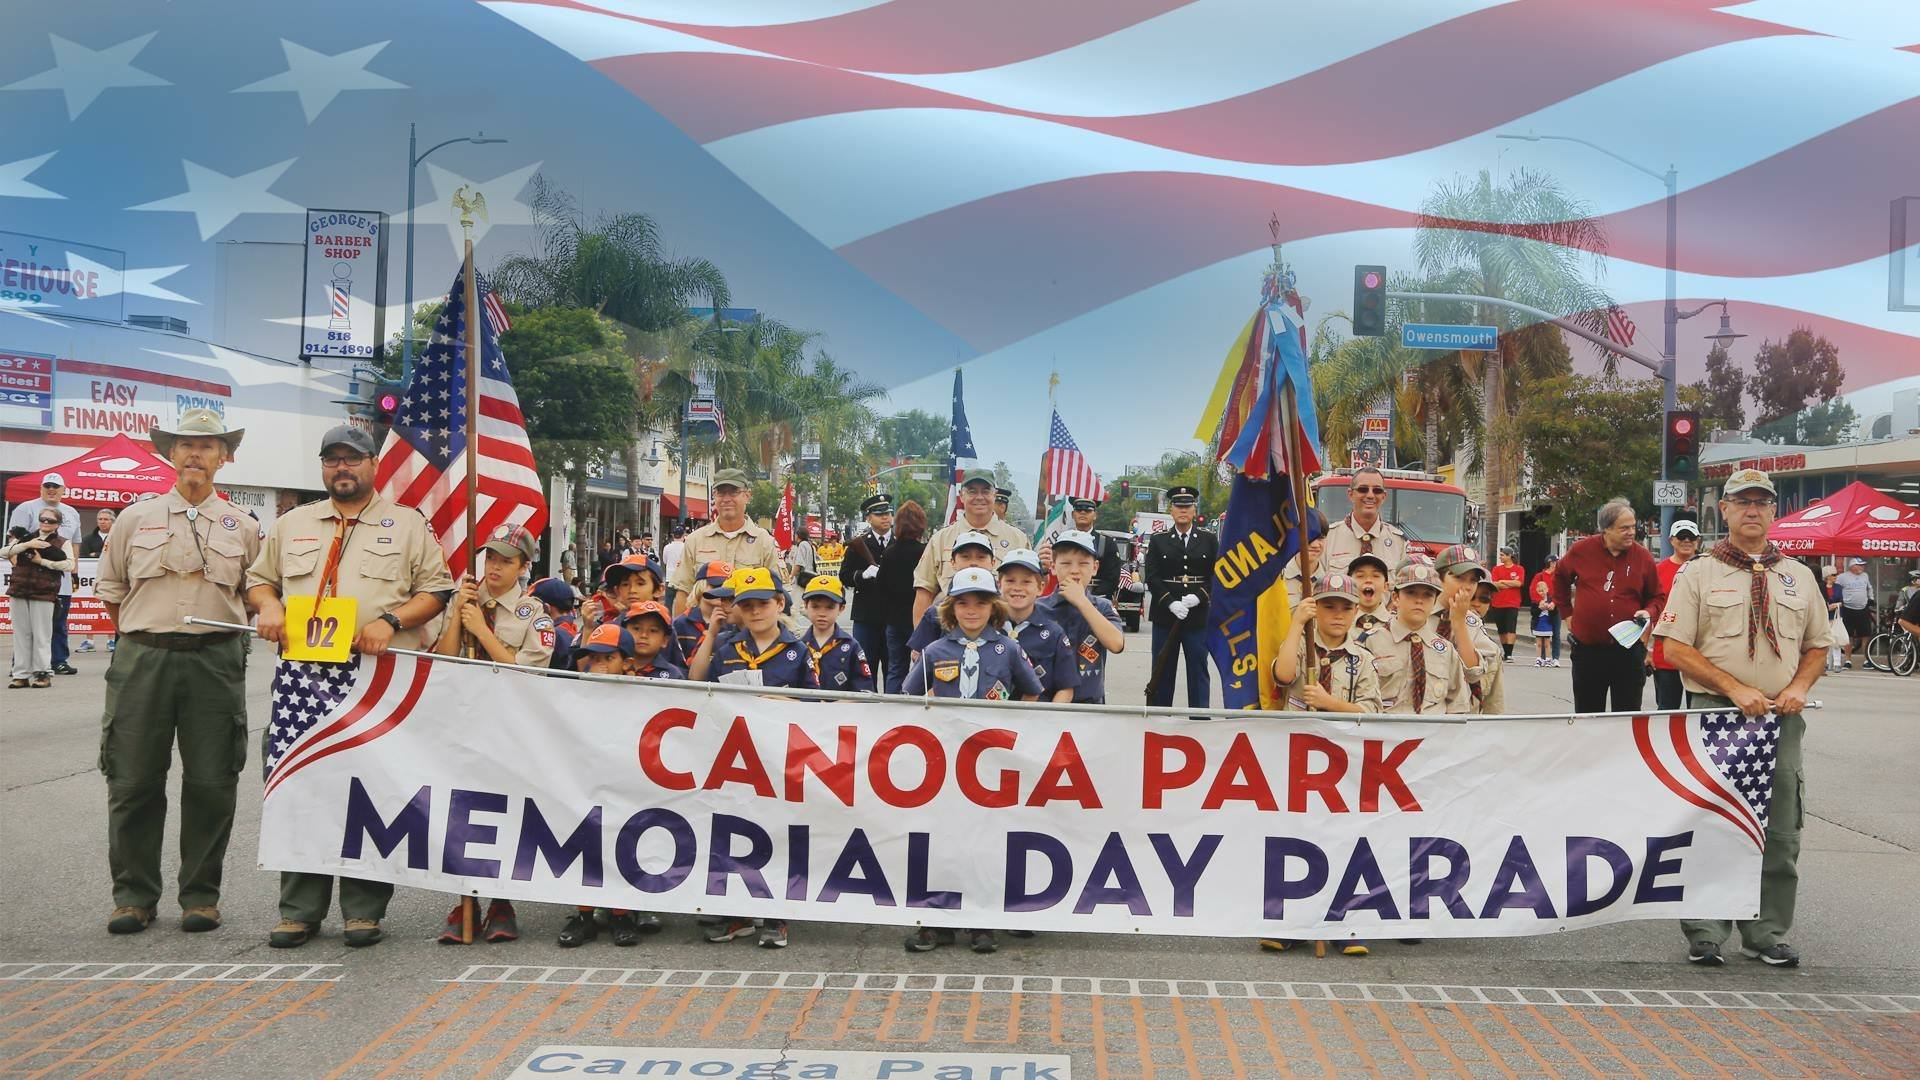 Dacula memorial day parade pictures M/